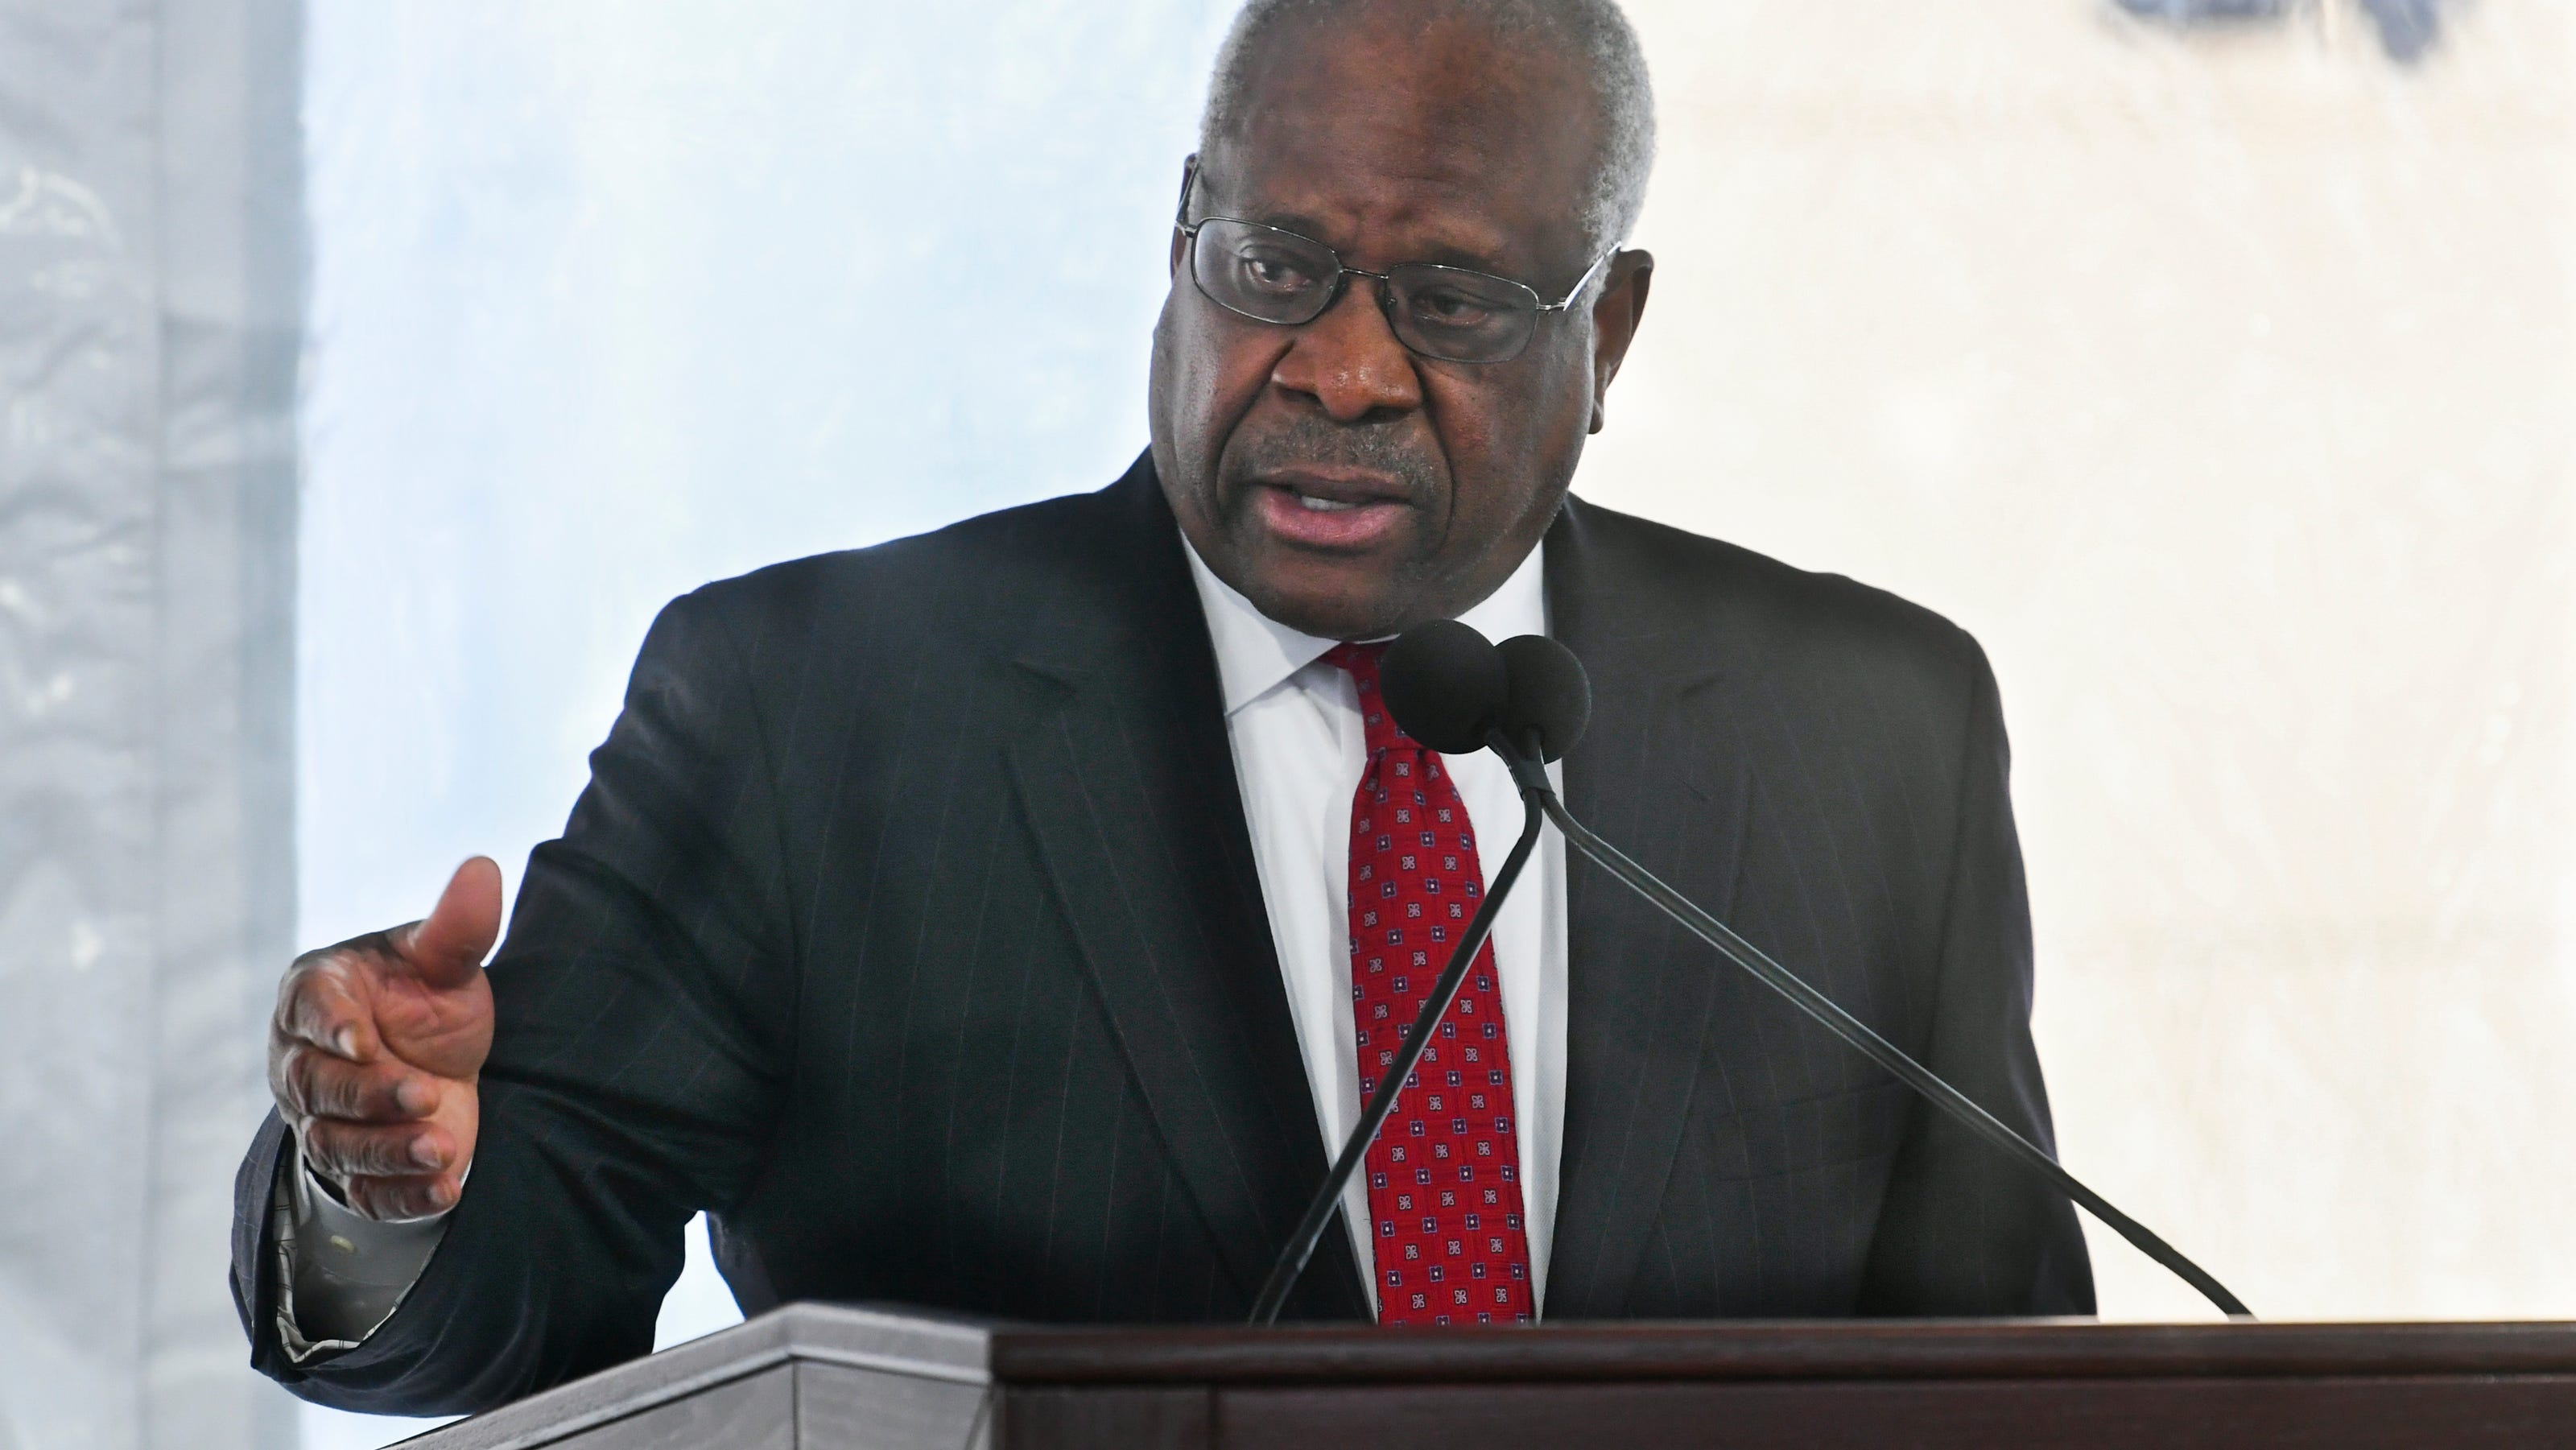 Dissent by Justice Thomas in election case draws fire for revisiting baseless Trump fraud claims - USA TODAY